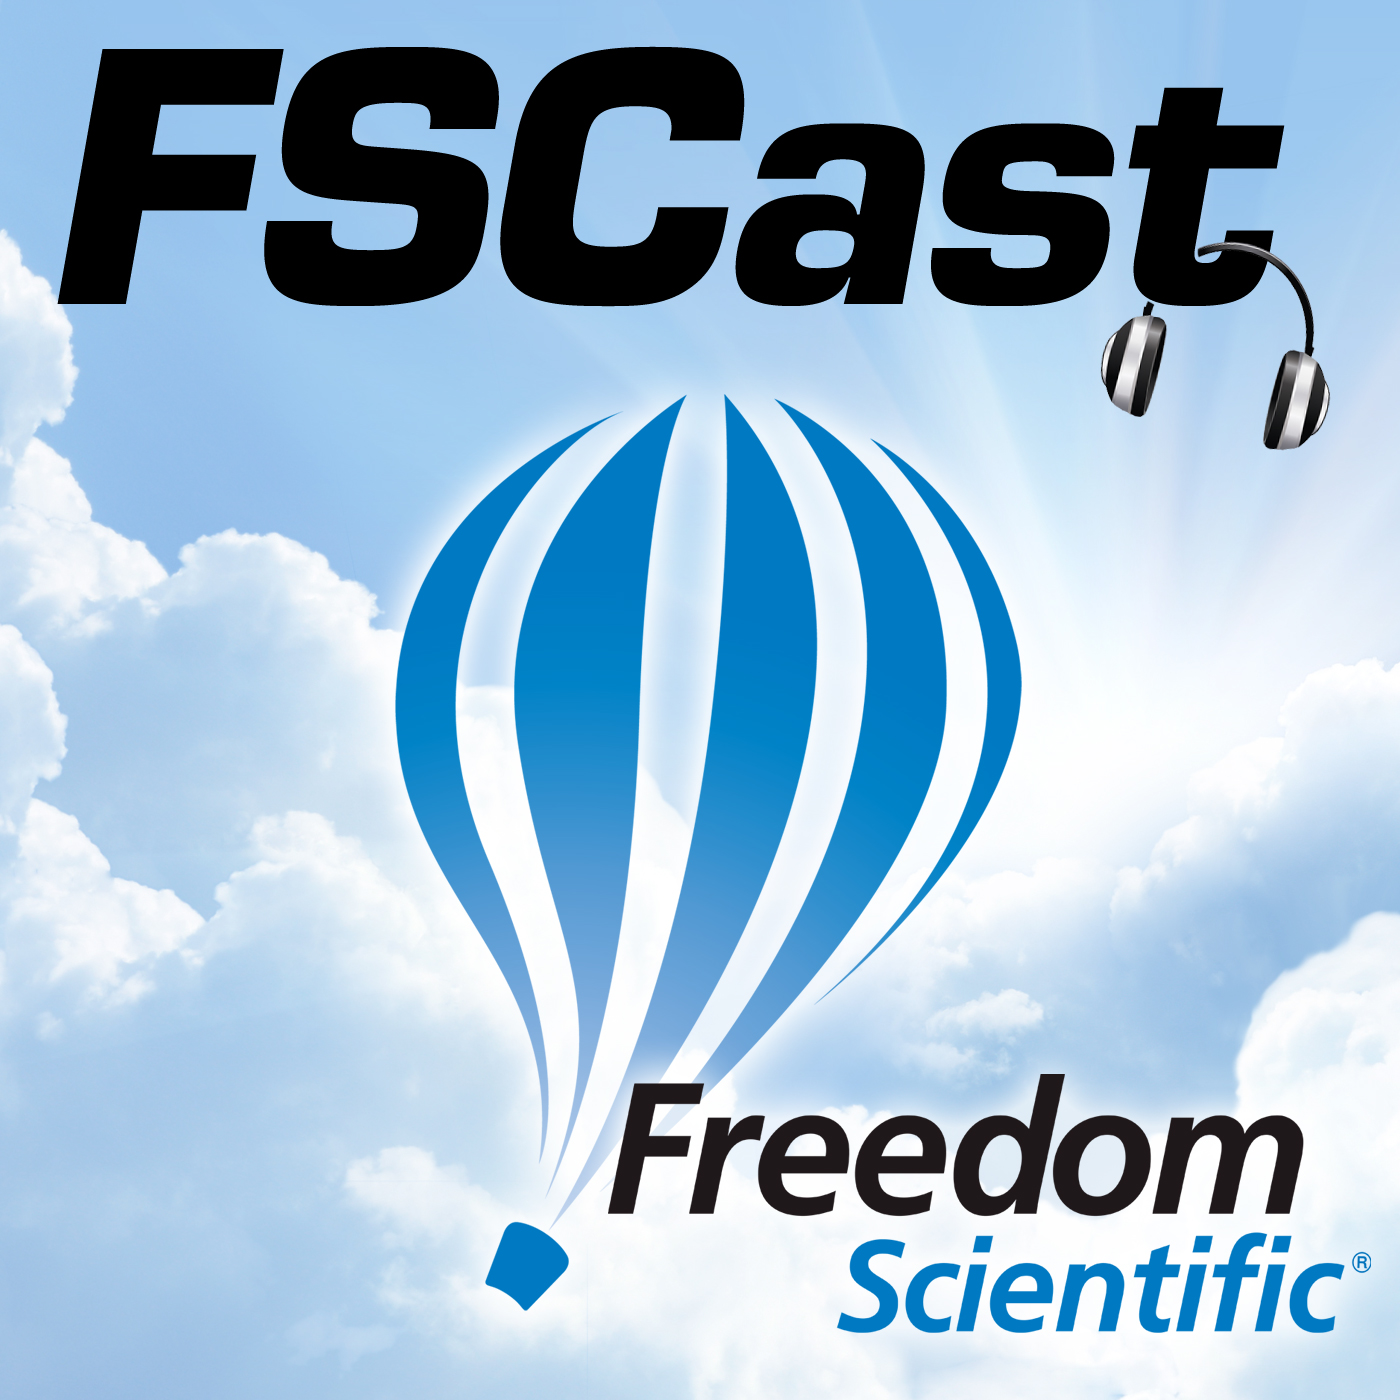 Freedom Scientific FSCast logo